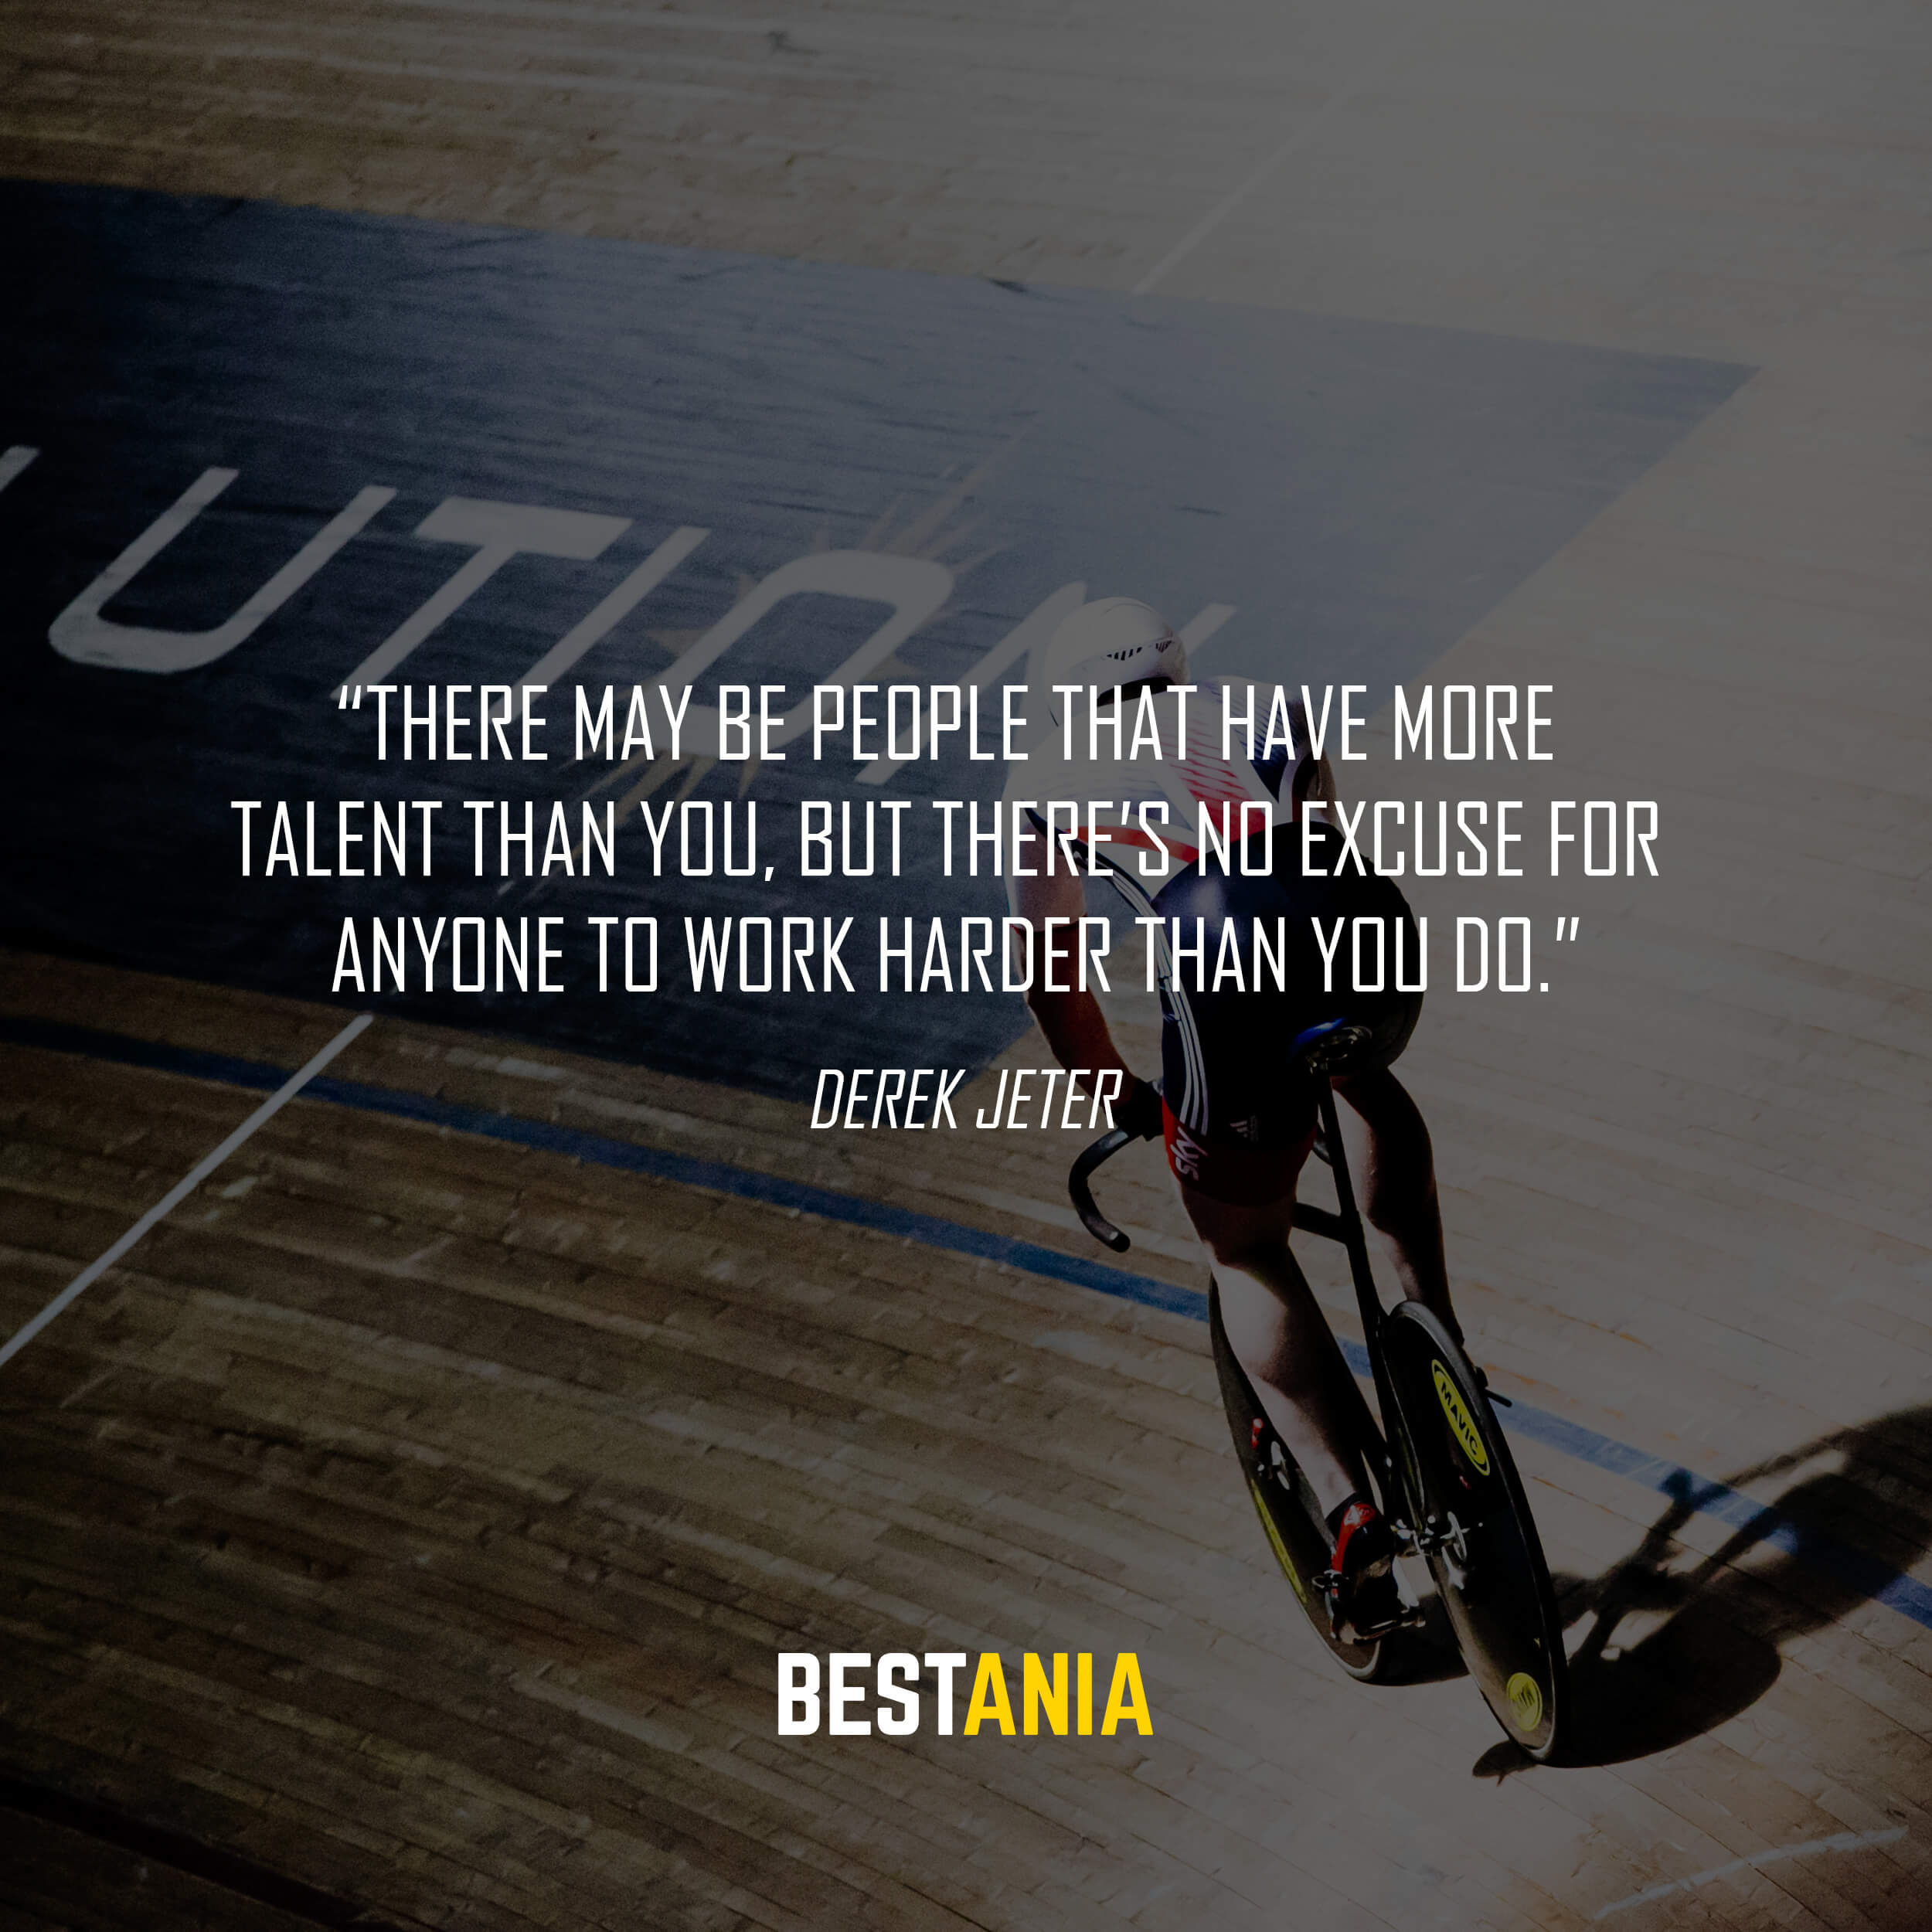 """There may be people that have more talent than you, but there's no excuse for anyone to work harder than you do."" – Derek Jeter"